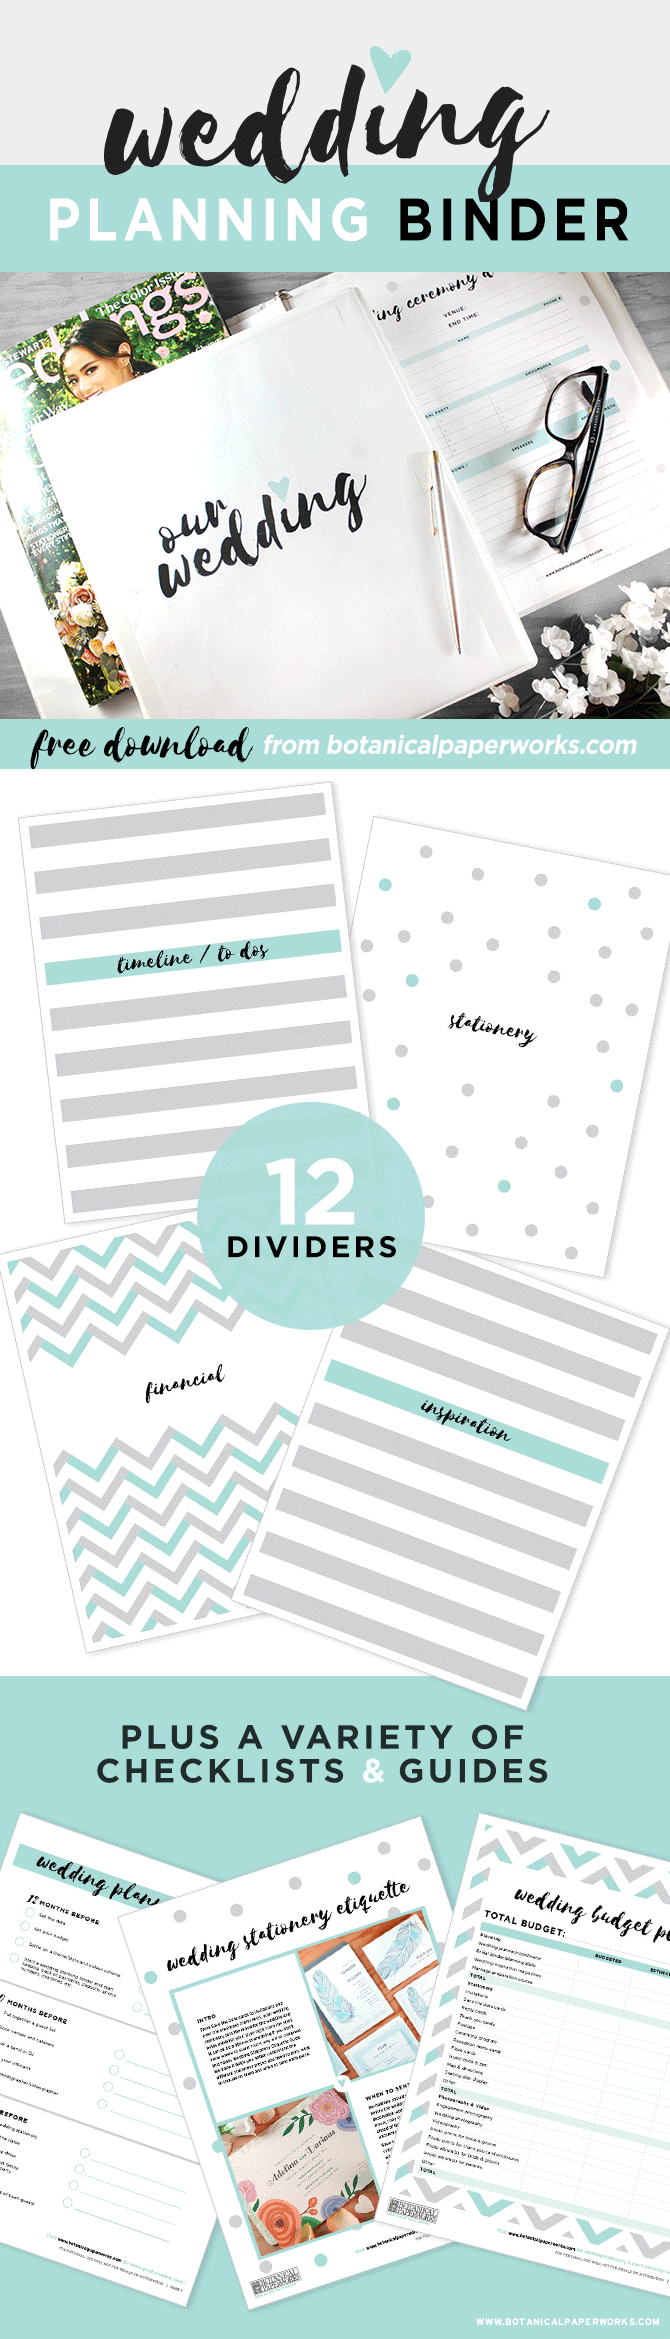 This Freeprintable Wedding Planning Binder Comes In 3 Color Options And Is Filled With